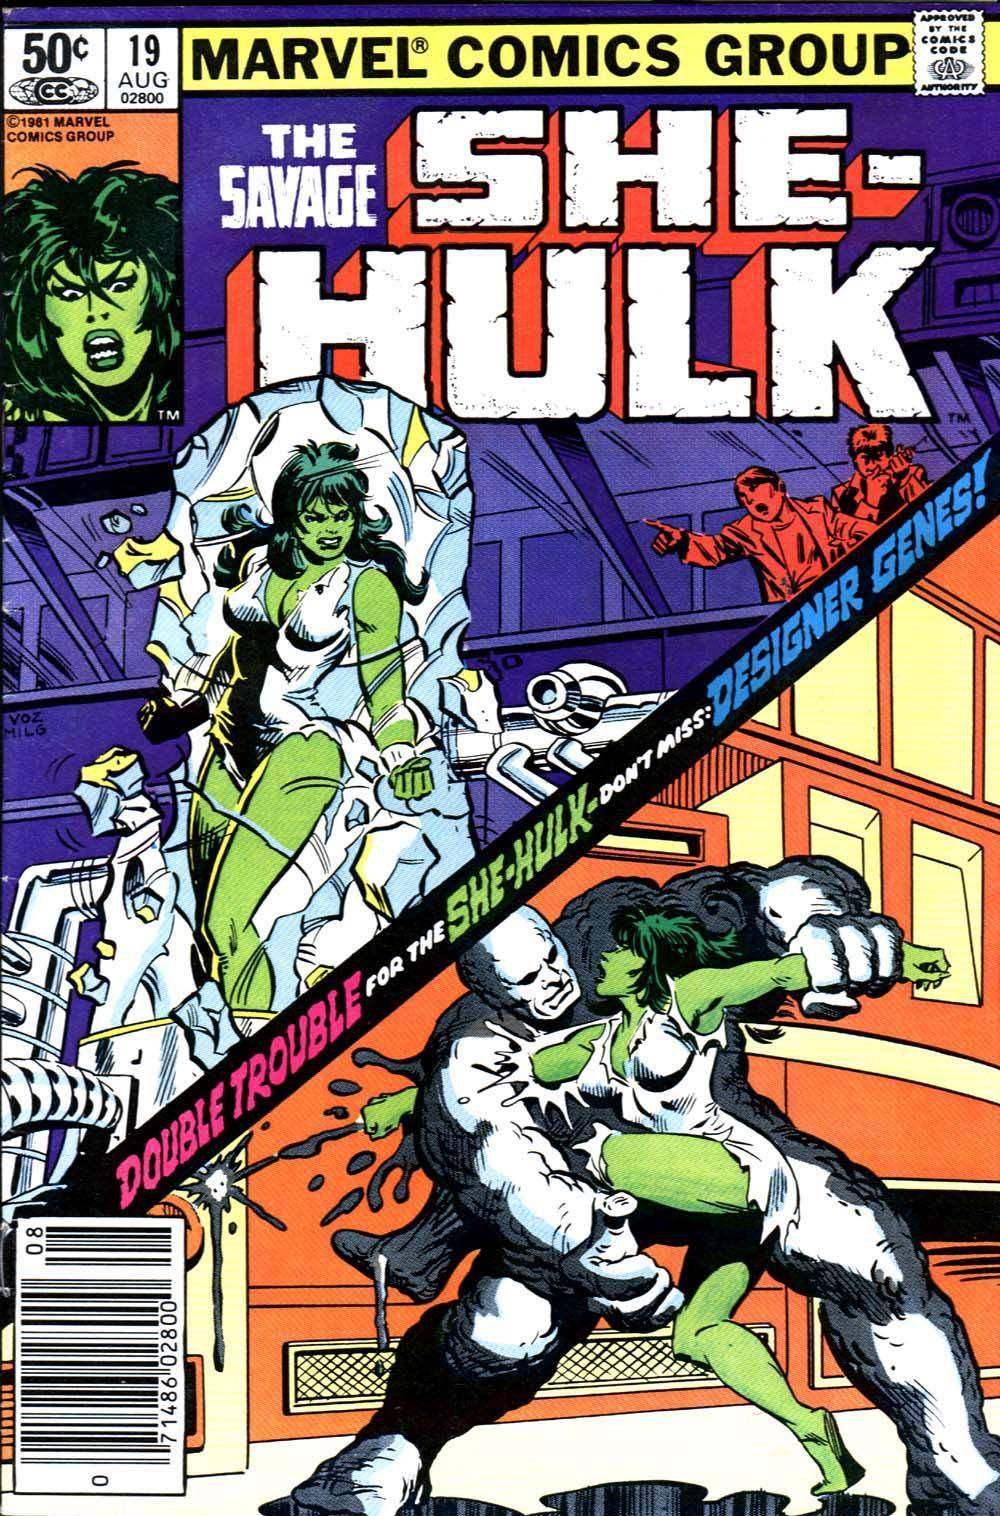 She Hulk Fills for Jasman [19 of 61] She Hulk [1981 08] The Savage She Hulk 019 cbr